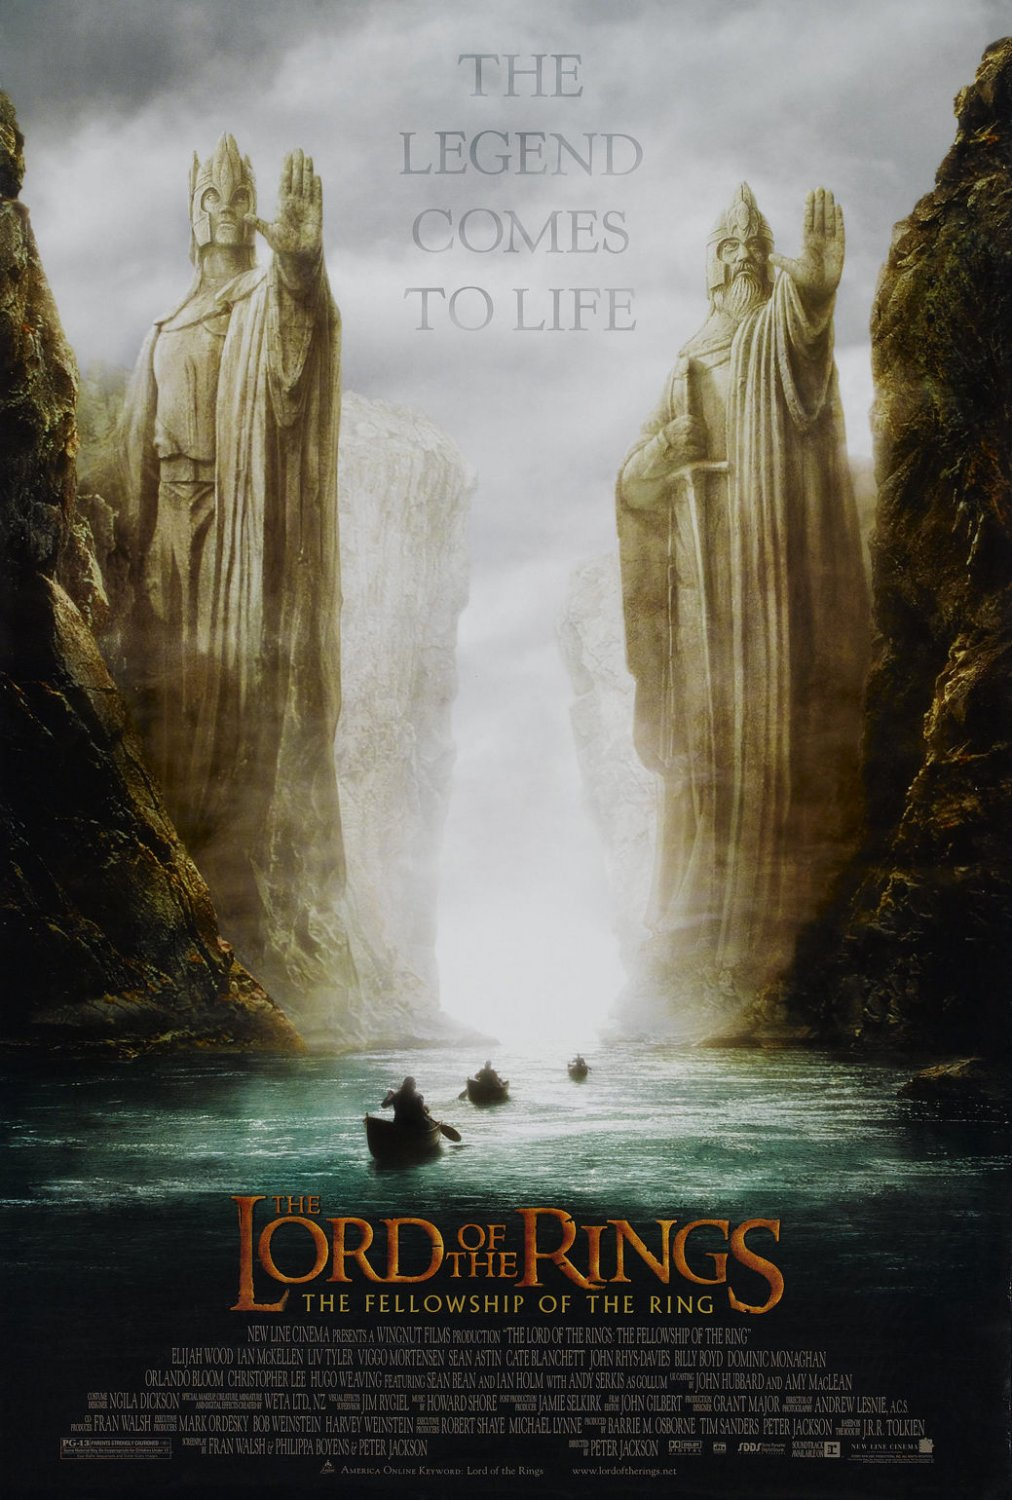 The Lord Of The Rings 1 2 3 Movie Wall Print POSTER Decor 32x24